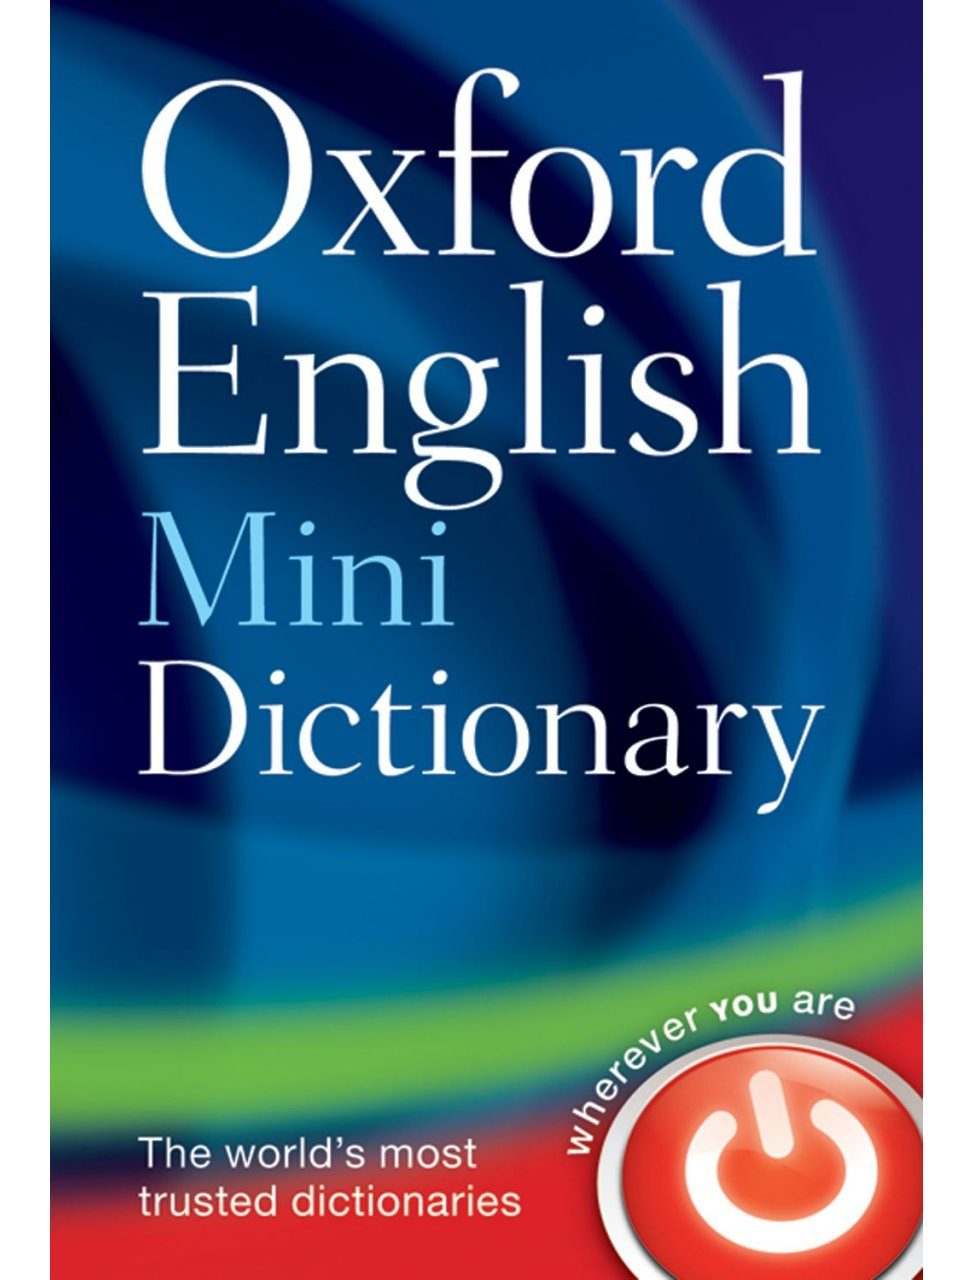 The Oxford English Minidictionary